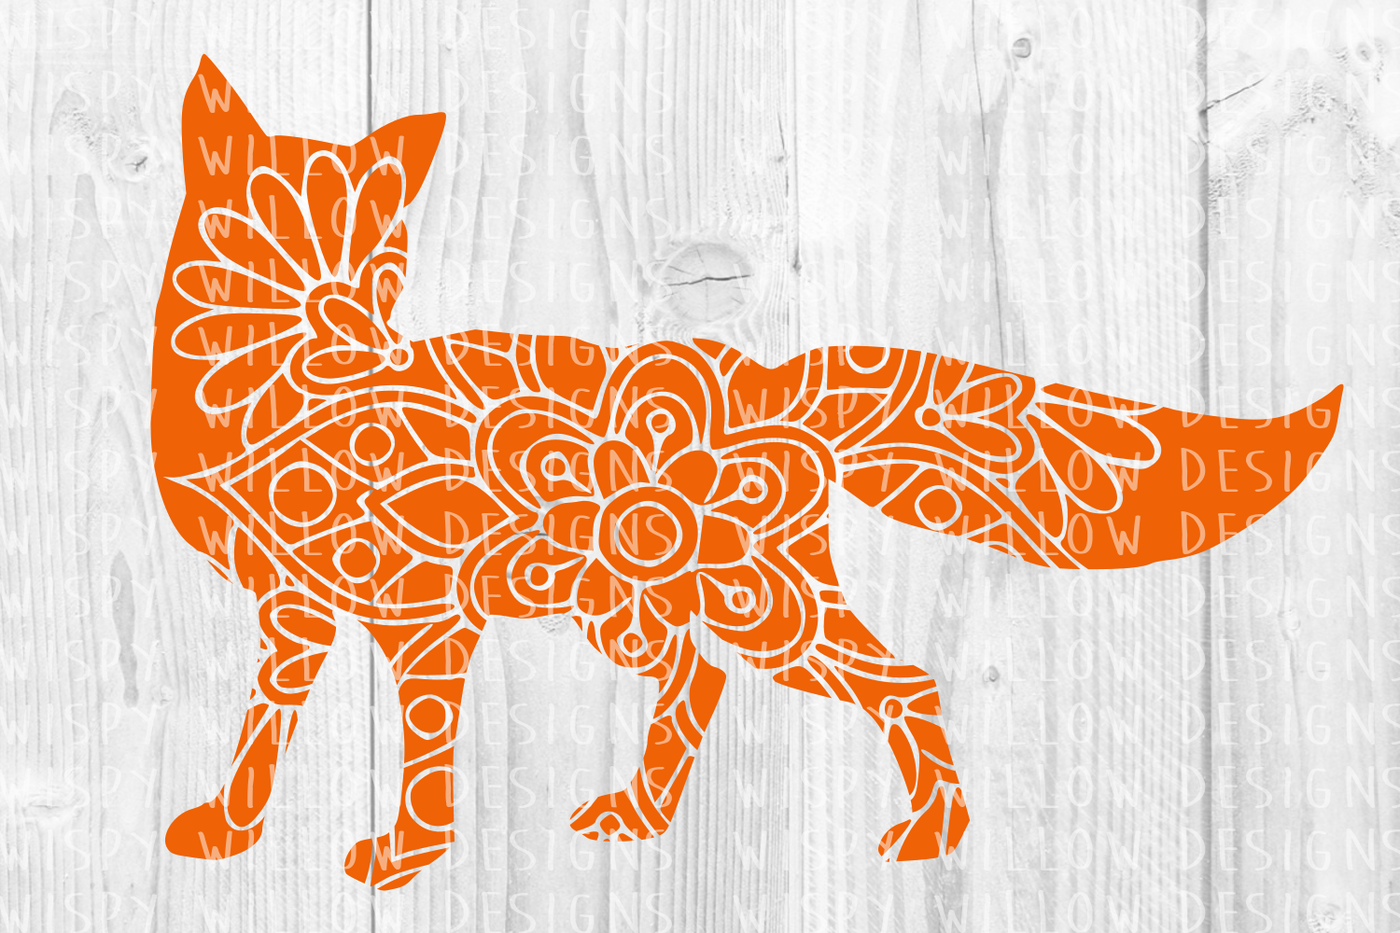 Fox Floral Mandala Svg Dxf Eps Png Jpg Pdf By Wispy Willow Designs